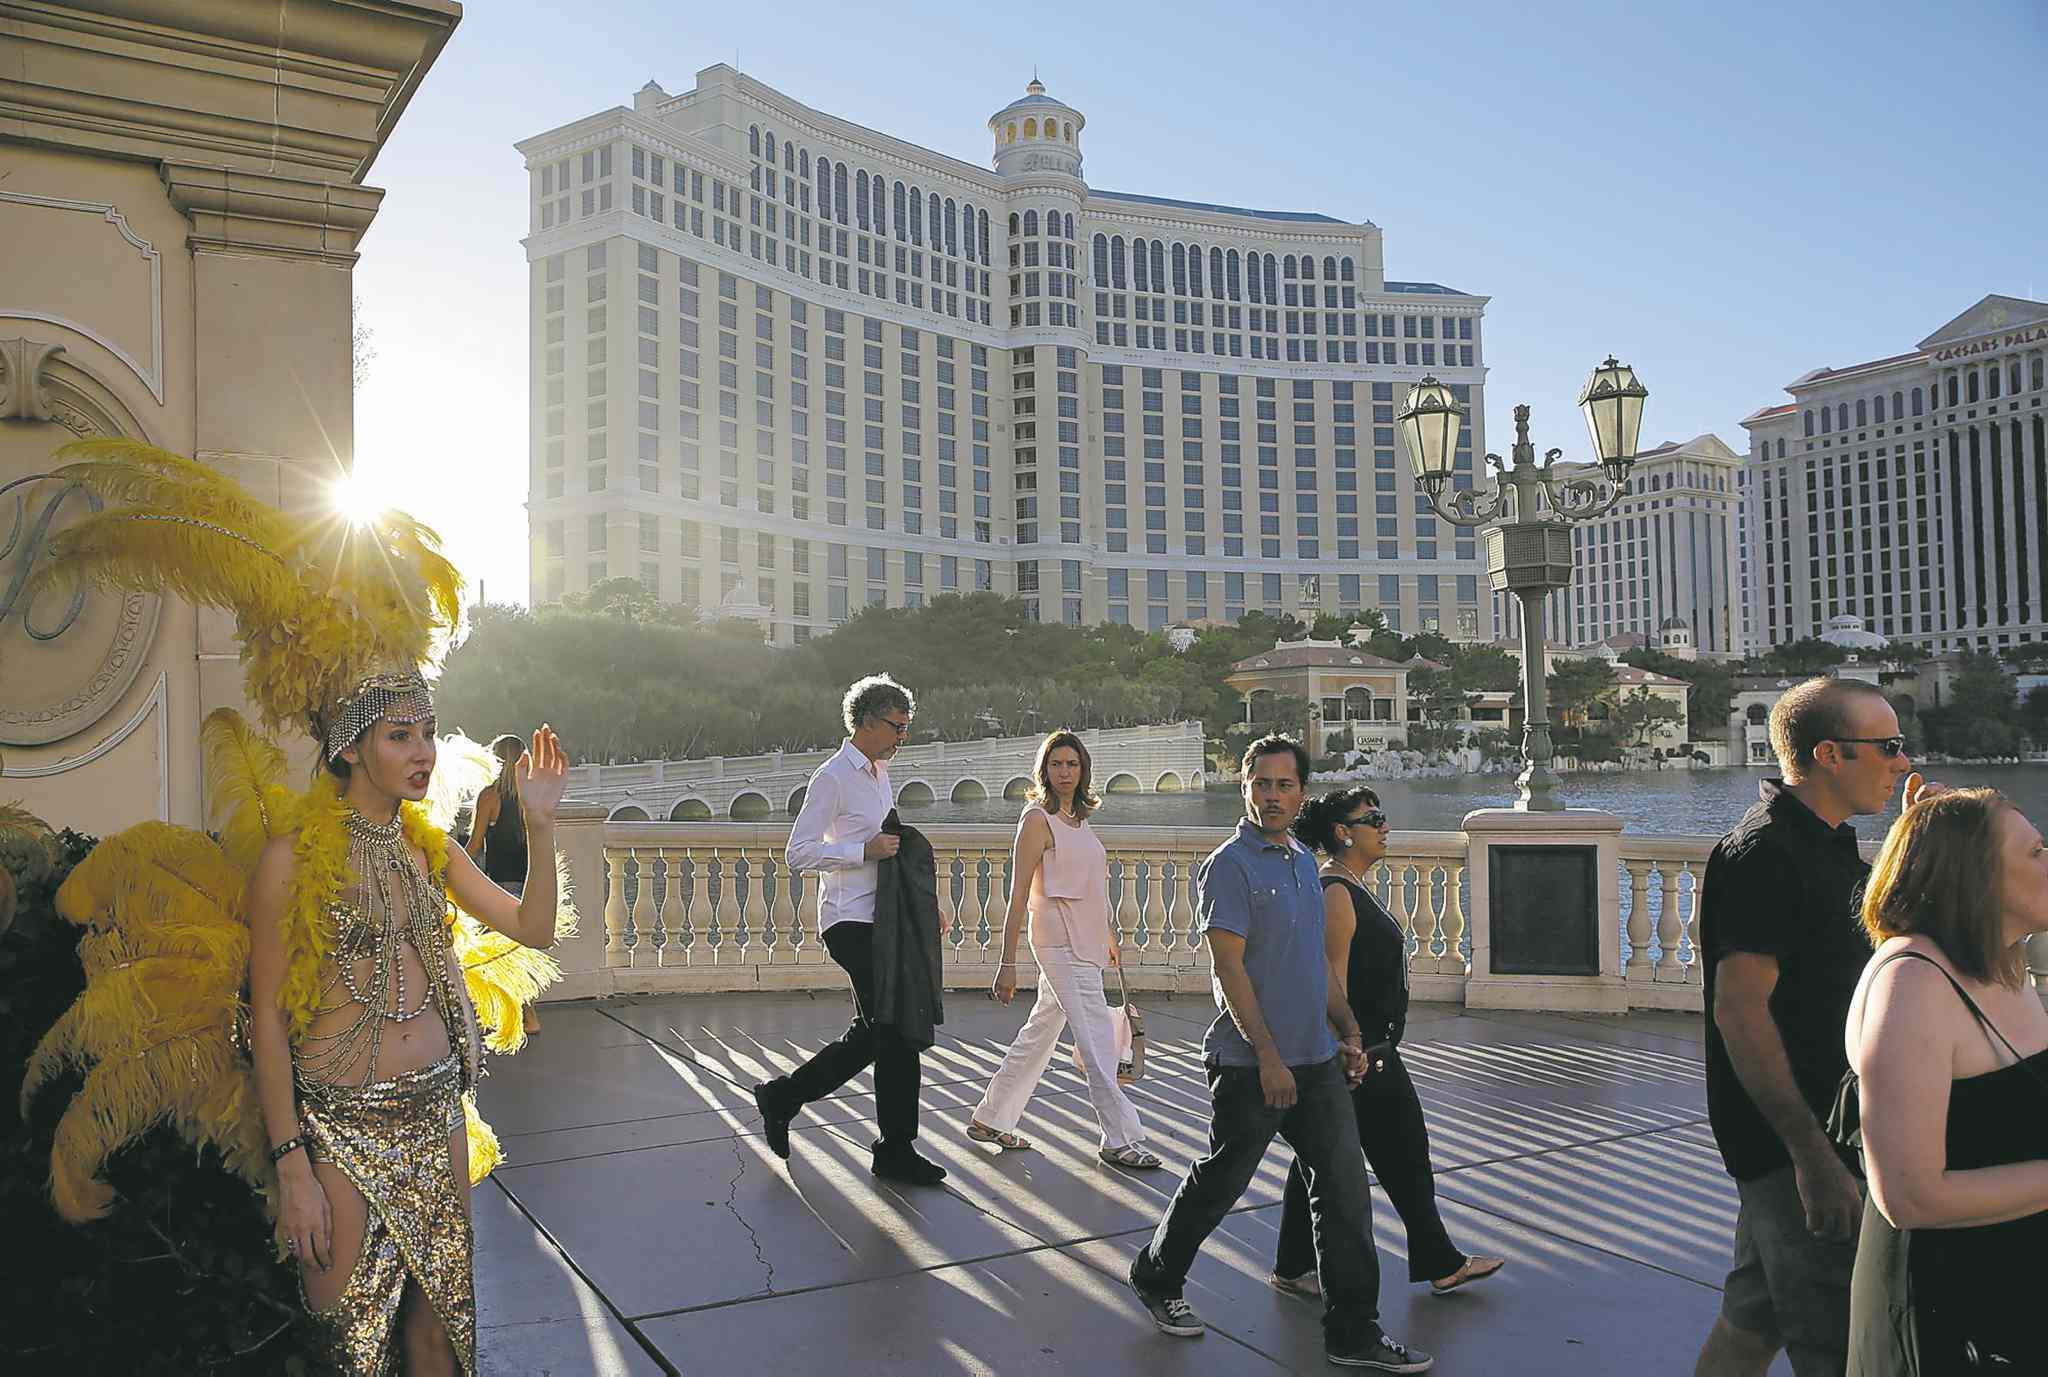 John Locher / The Associated Press